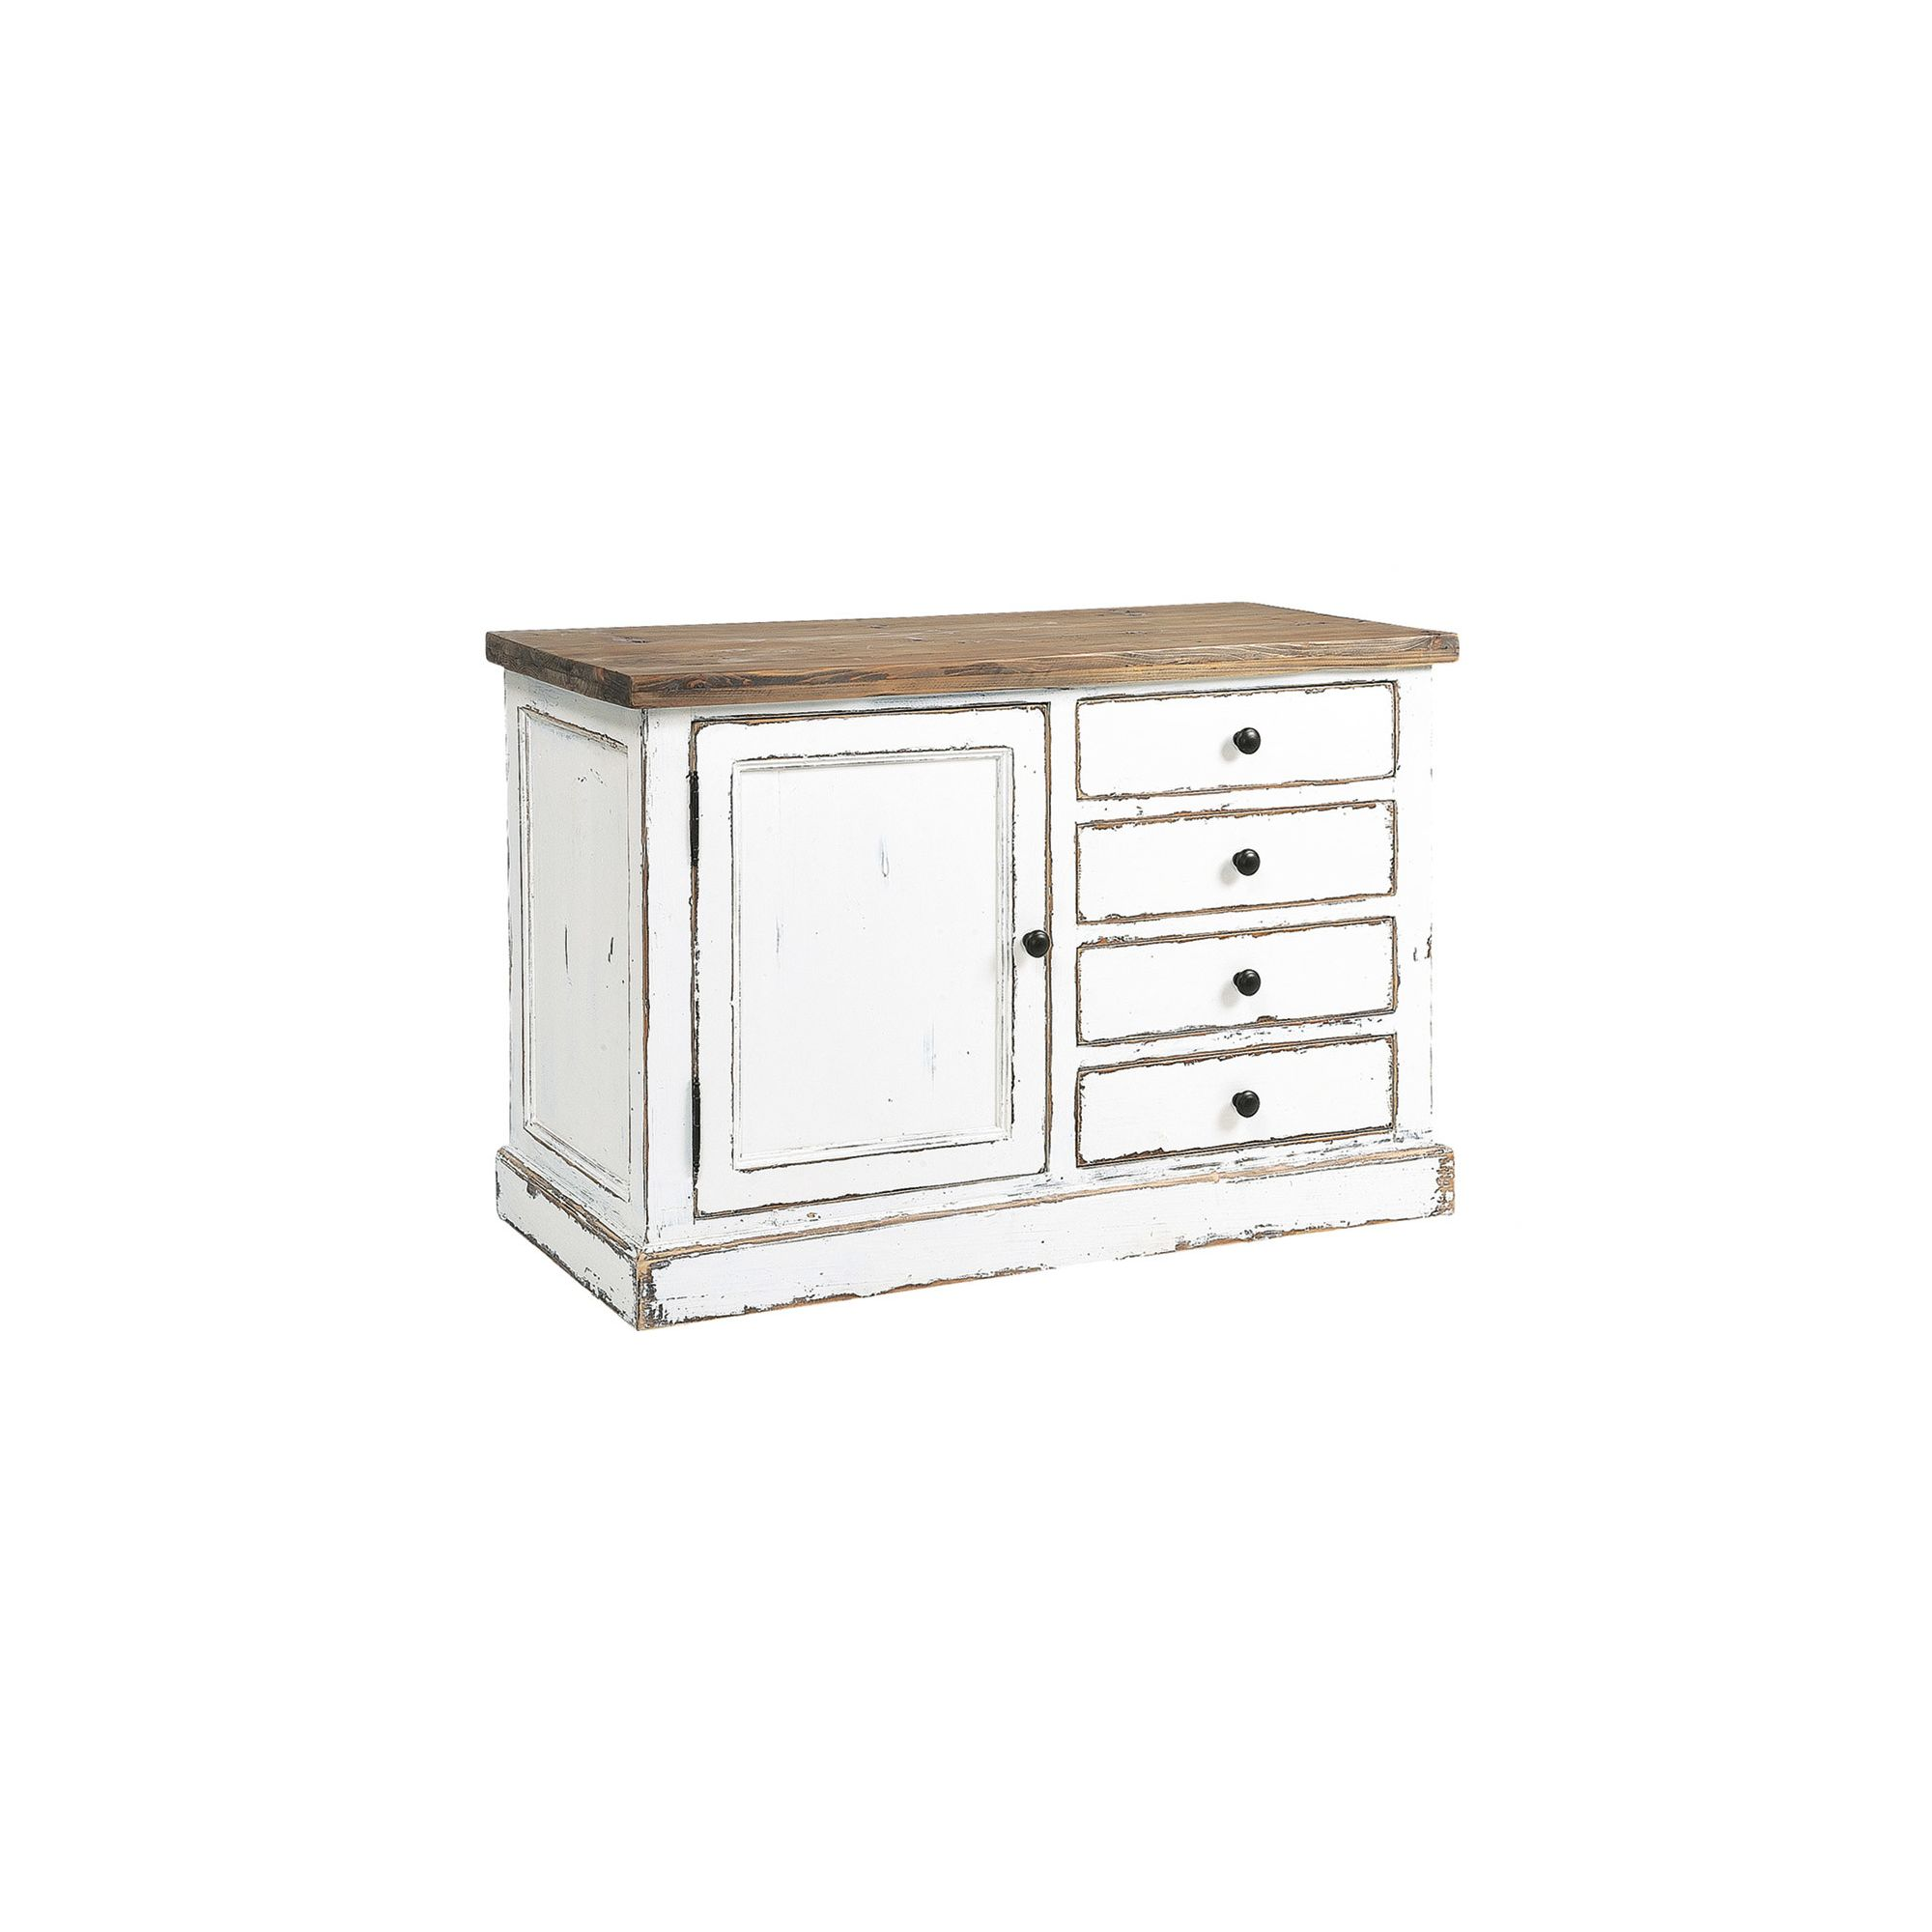 Rowico Aspen Sideboard - White Distress Painted at Tesco Direct